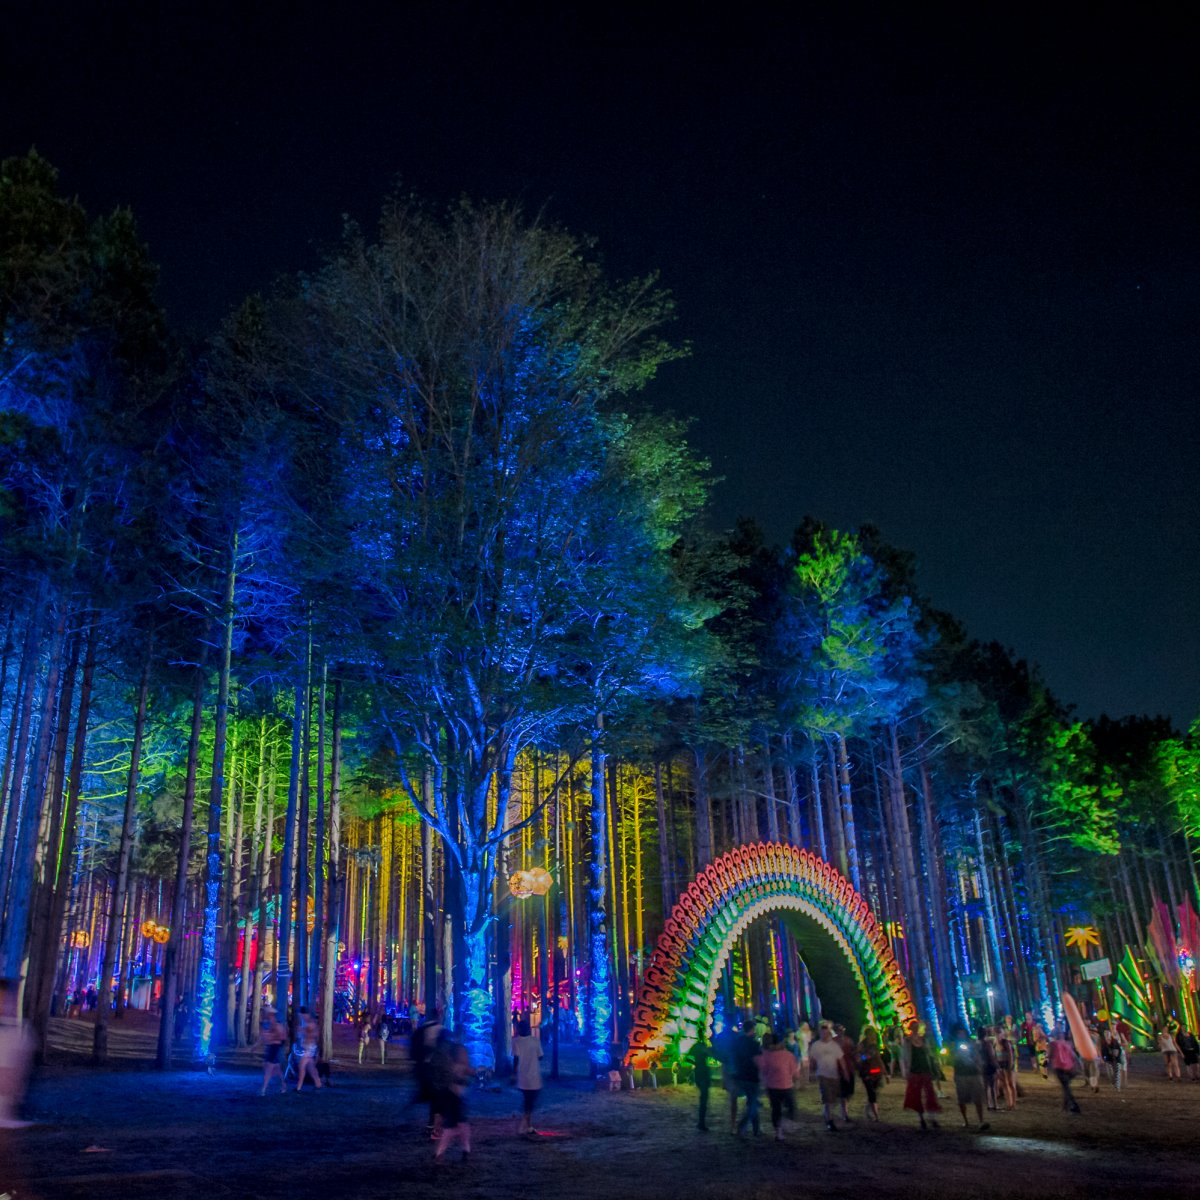 Image of an entrance in the shape of a rainbow and tall trees uplight in bright colors